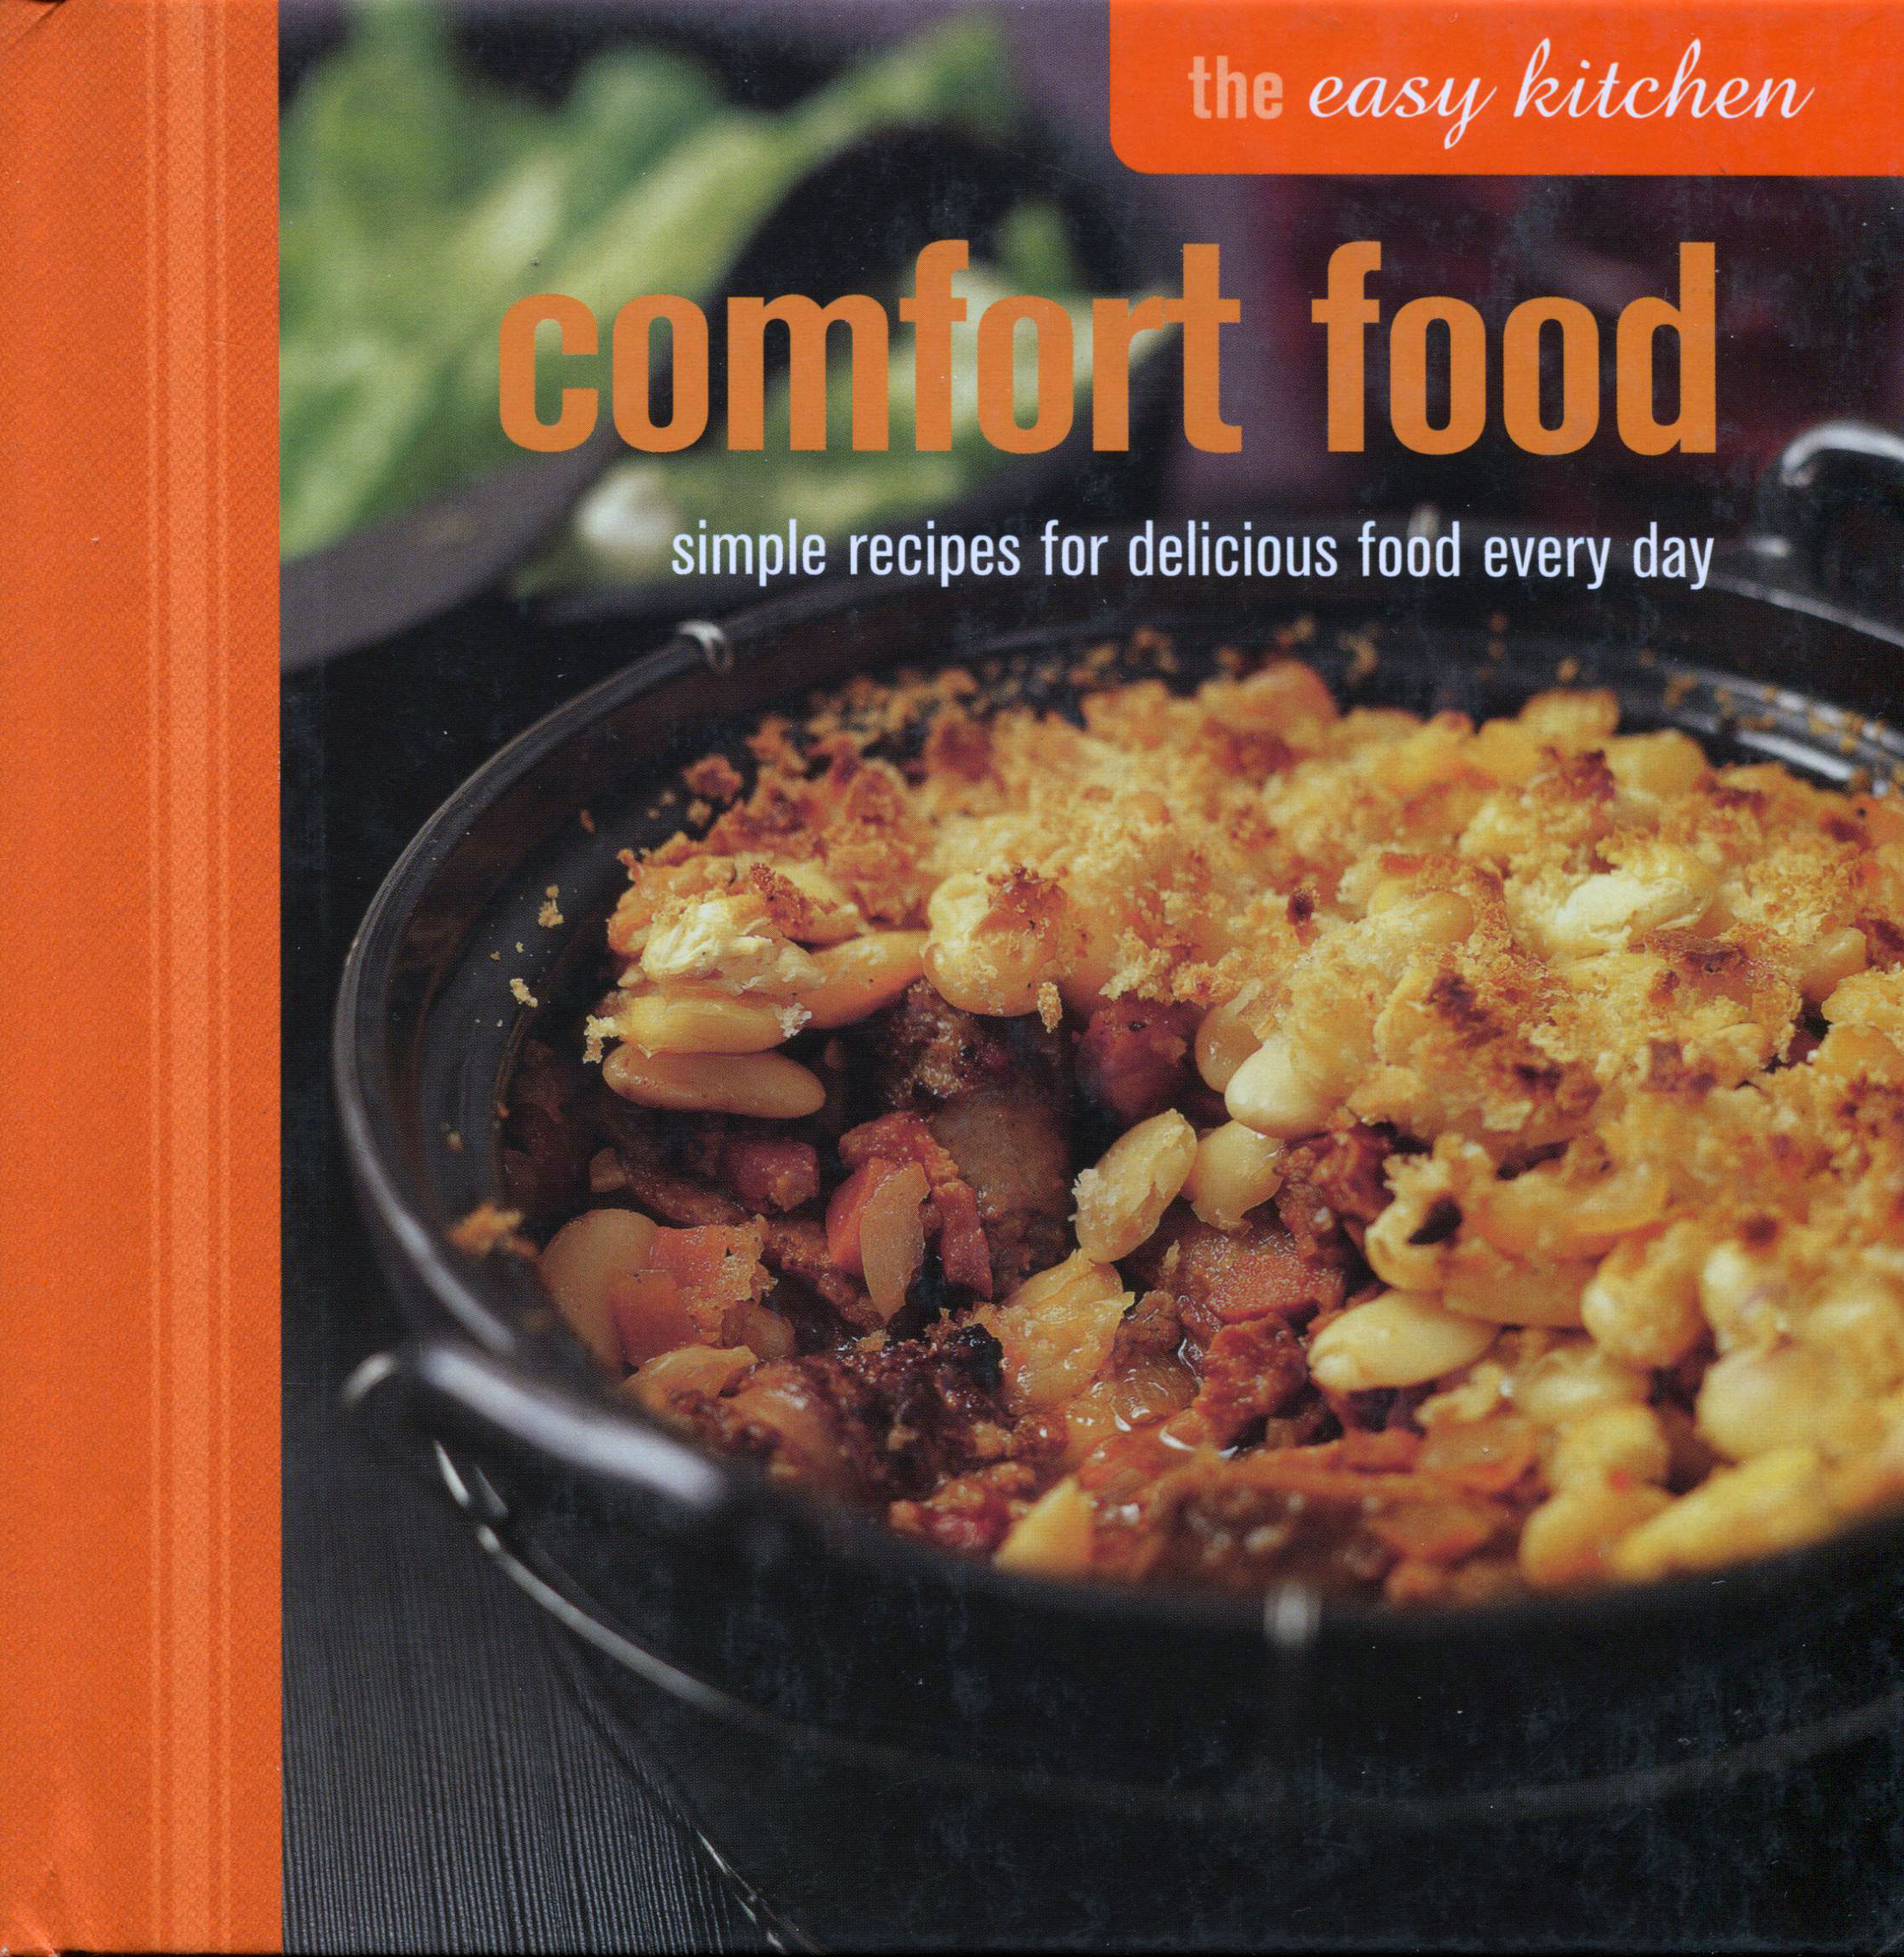 TBT Cookbook Review: Comfort Food from Ryland Peters